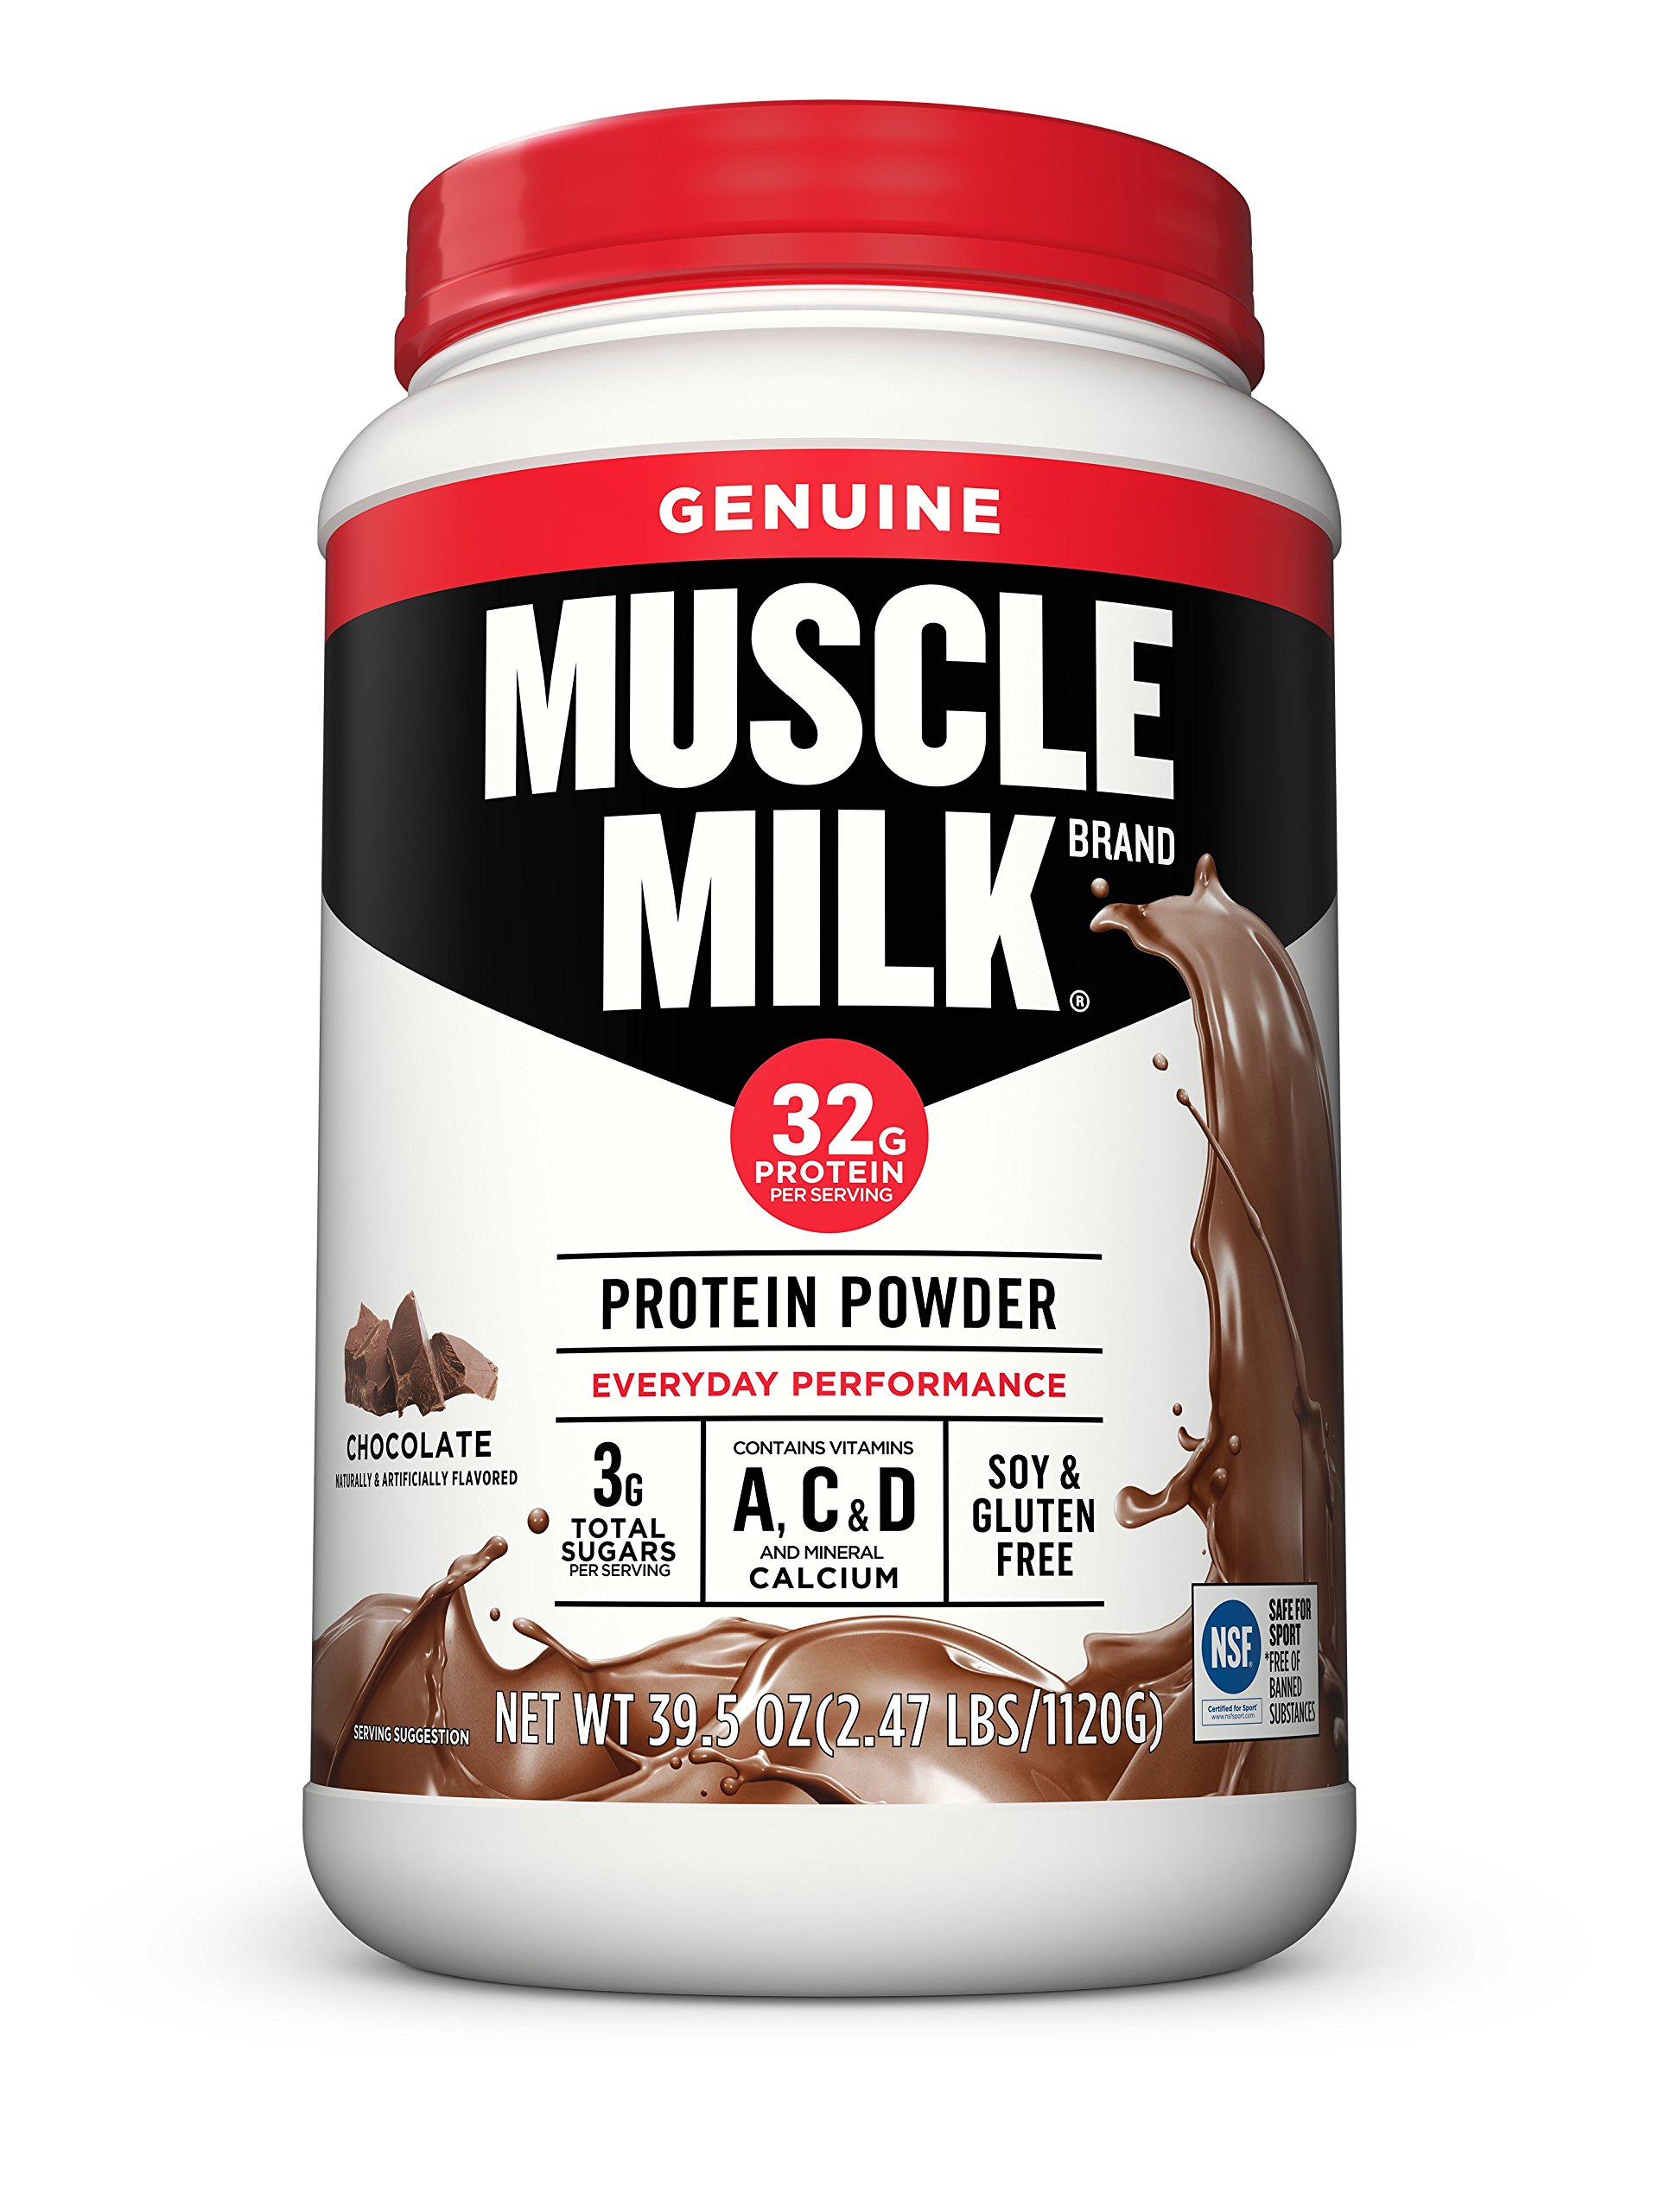 Muscle Milk Genuine Protein Powder, Chocolate, 32g Protein, 2.47 Pound (Packaging May Vary) by CytoSport